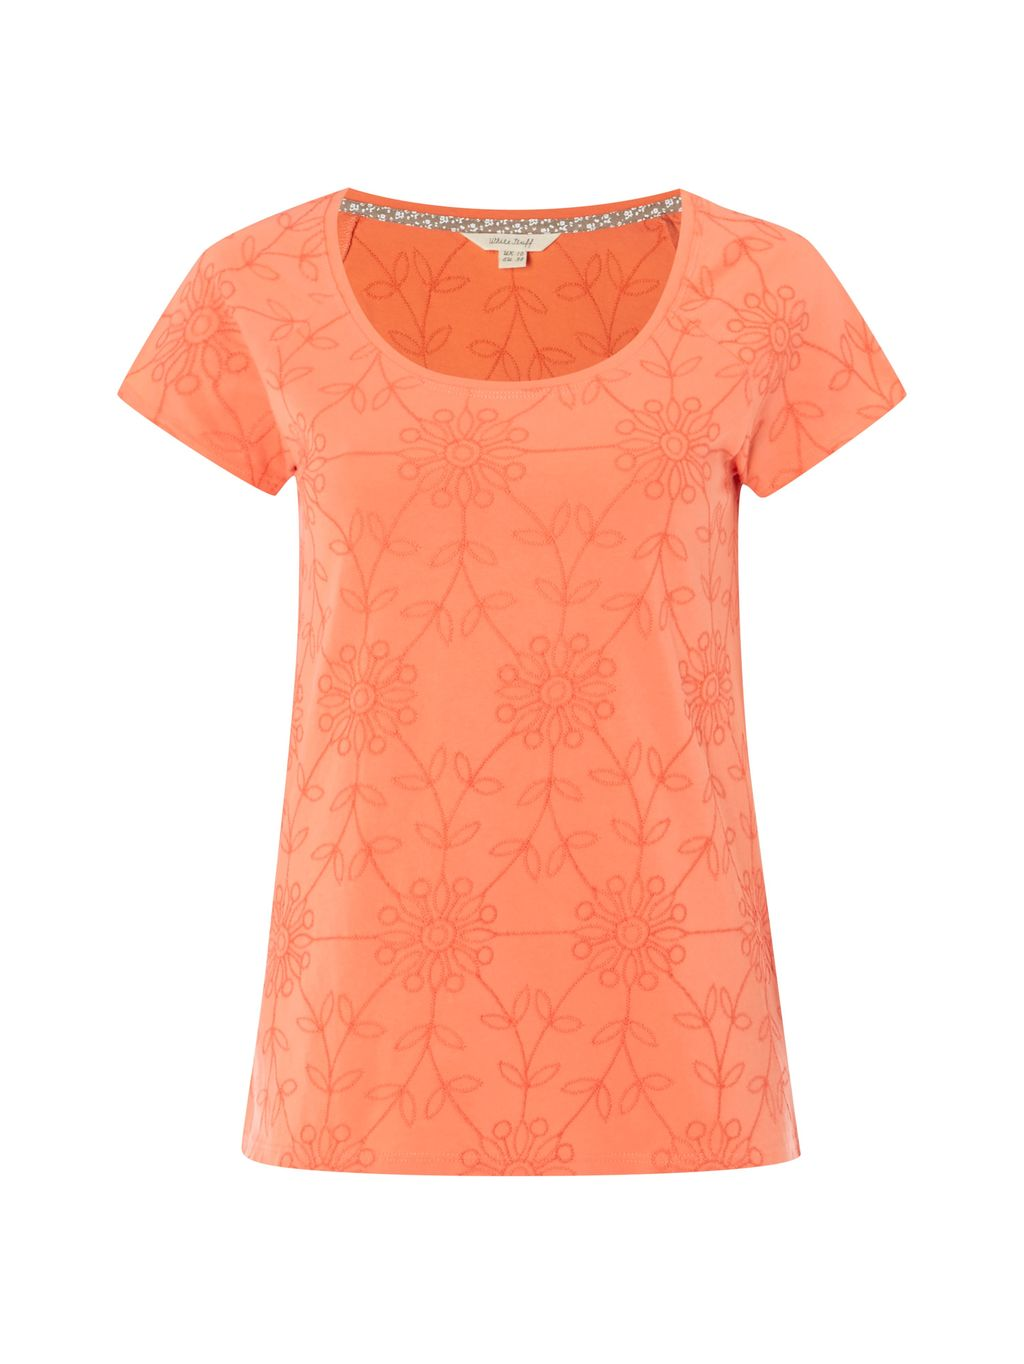 Rosanna Emb Jersey Tee, Pink - neckline: round neck; style: t-shirt; predominant colour: coral; occasions: casual; length: standard; fibres: cotton - 100%; fit: body skimming; sleeve length: short sleeve; sleeve style: standard; pattern type: fabric; pattern size: standard; pattern: florals; texture group: jersey - stretchy/drapey; season: s/s 2016